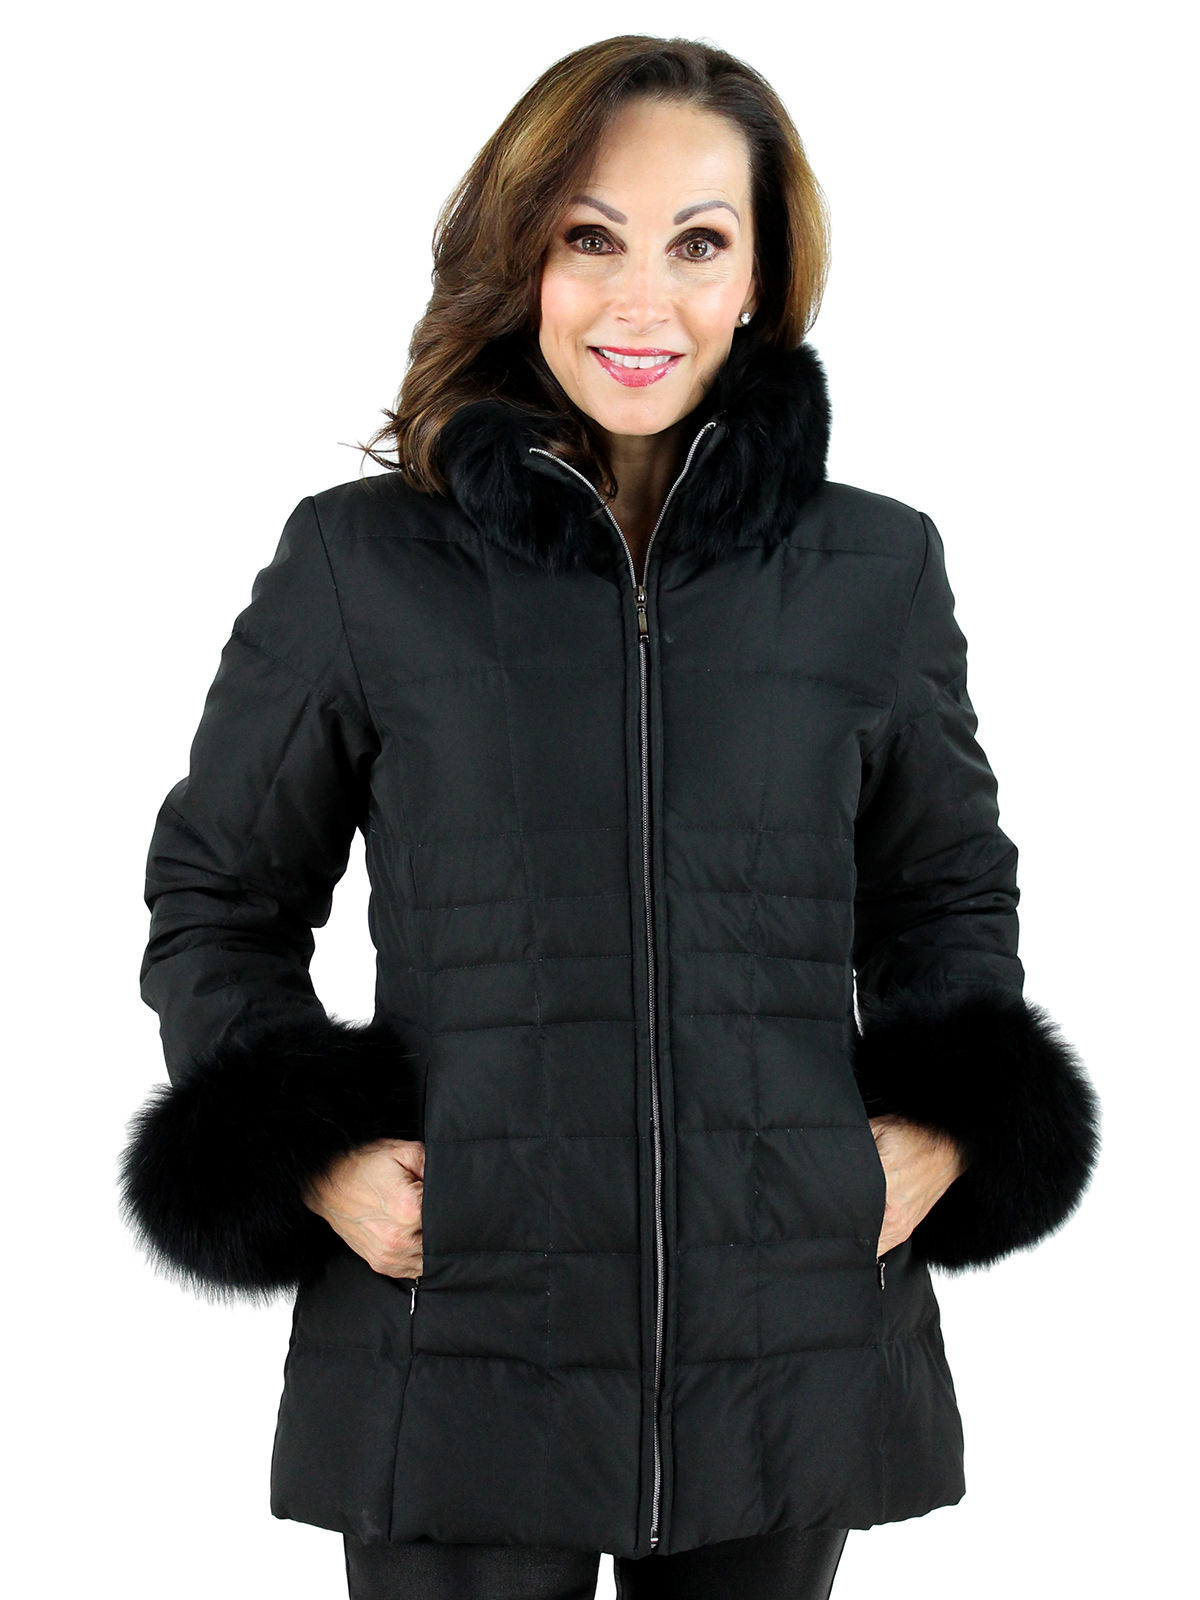 Woman's Black Nylon Quilted Ski Parka with Fox Collar and Cuffs